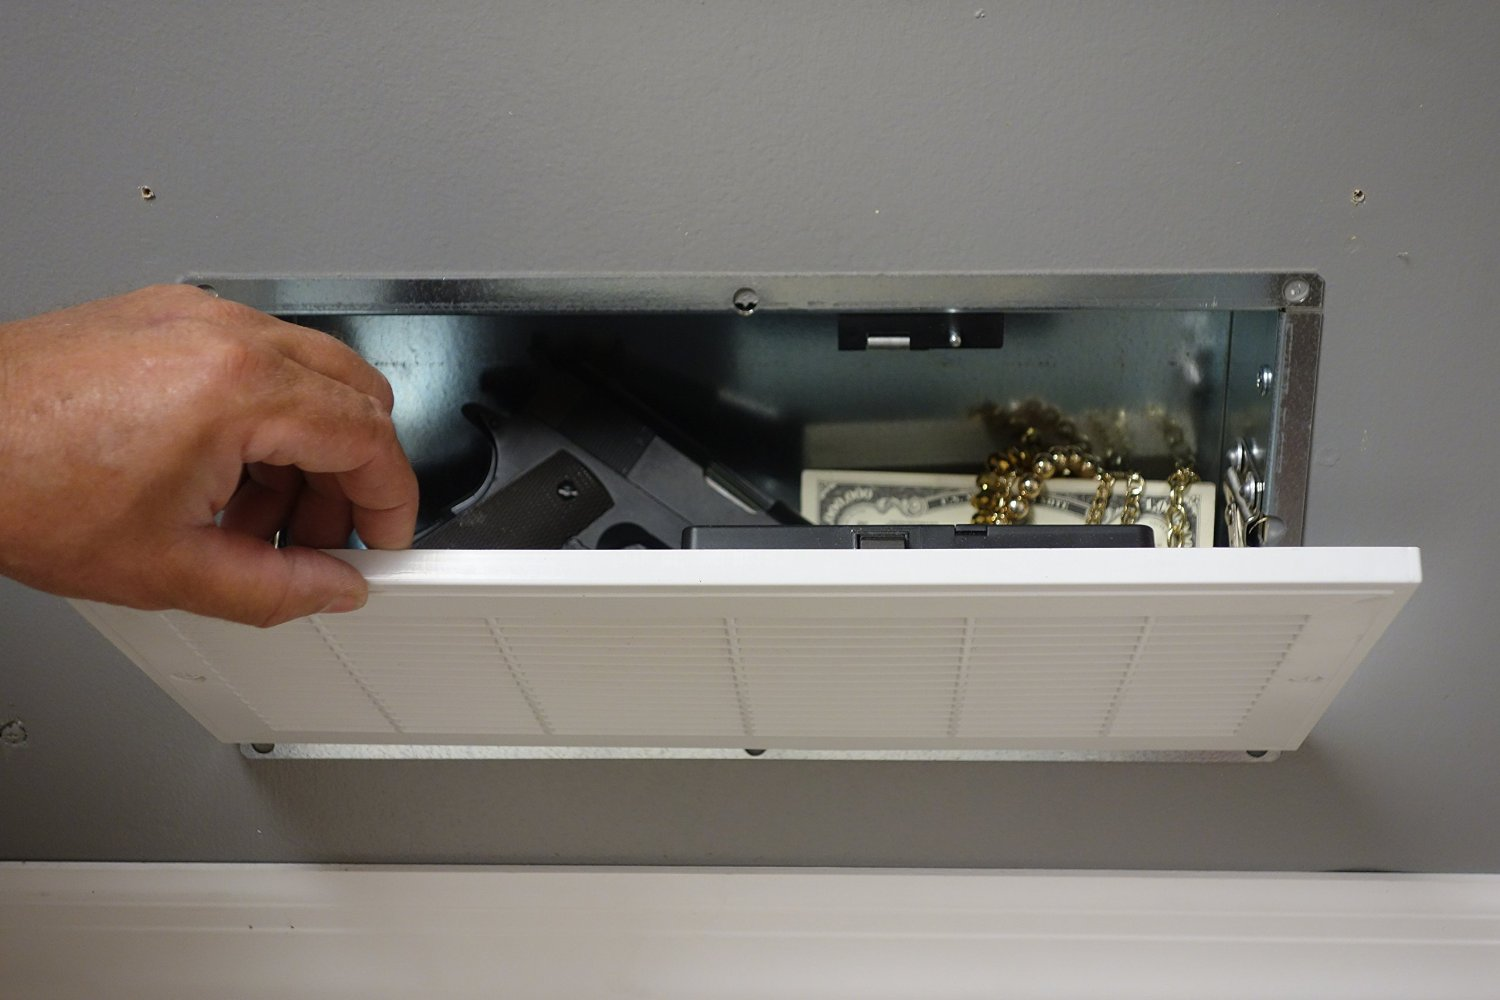 can you see the stunning features of the Quick Vent Safe with RFID in this picture?